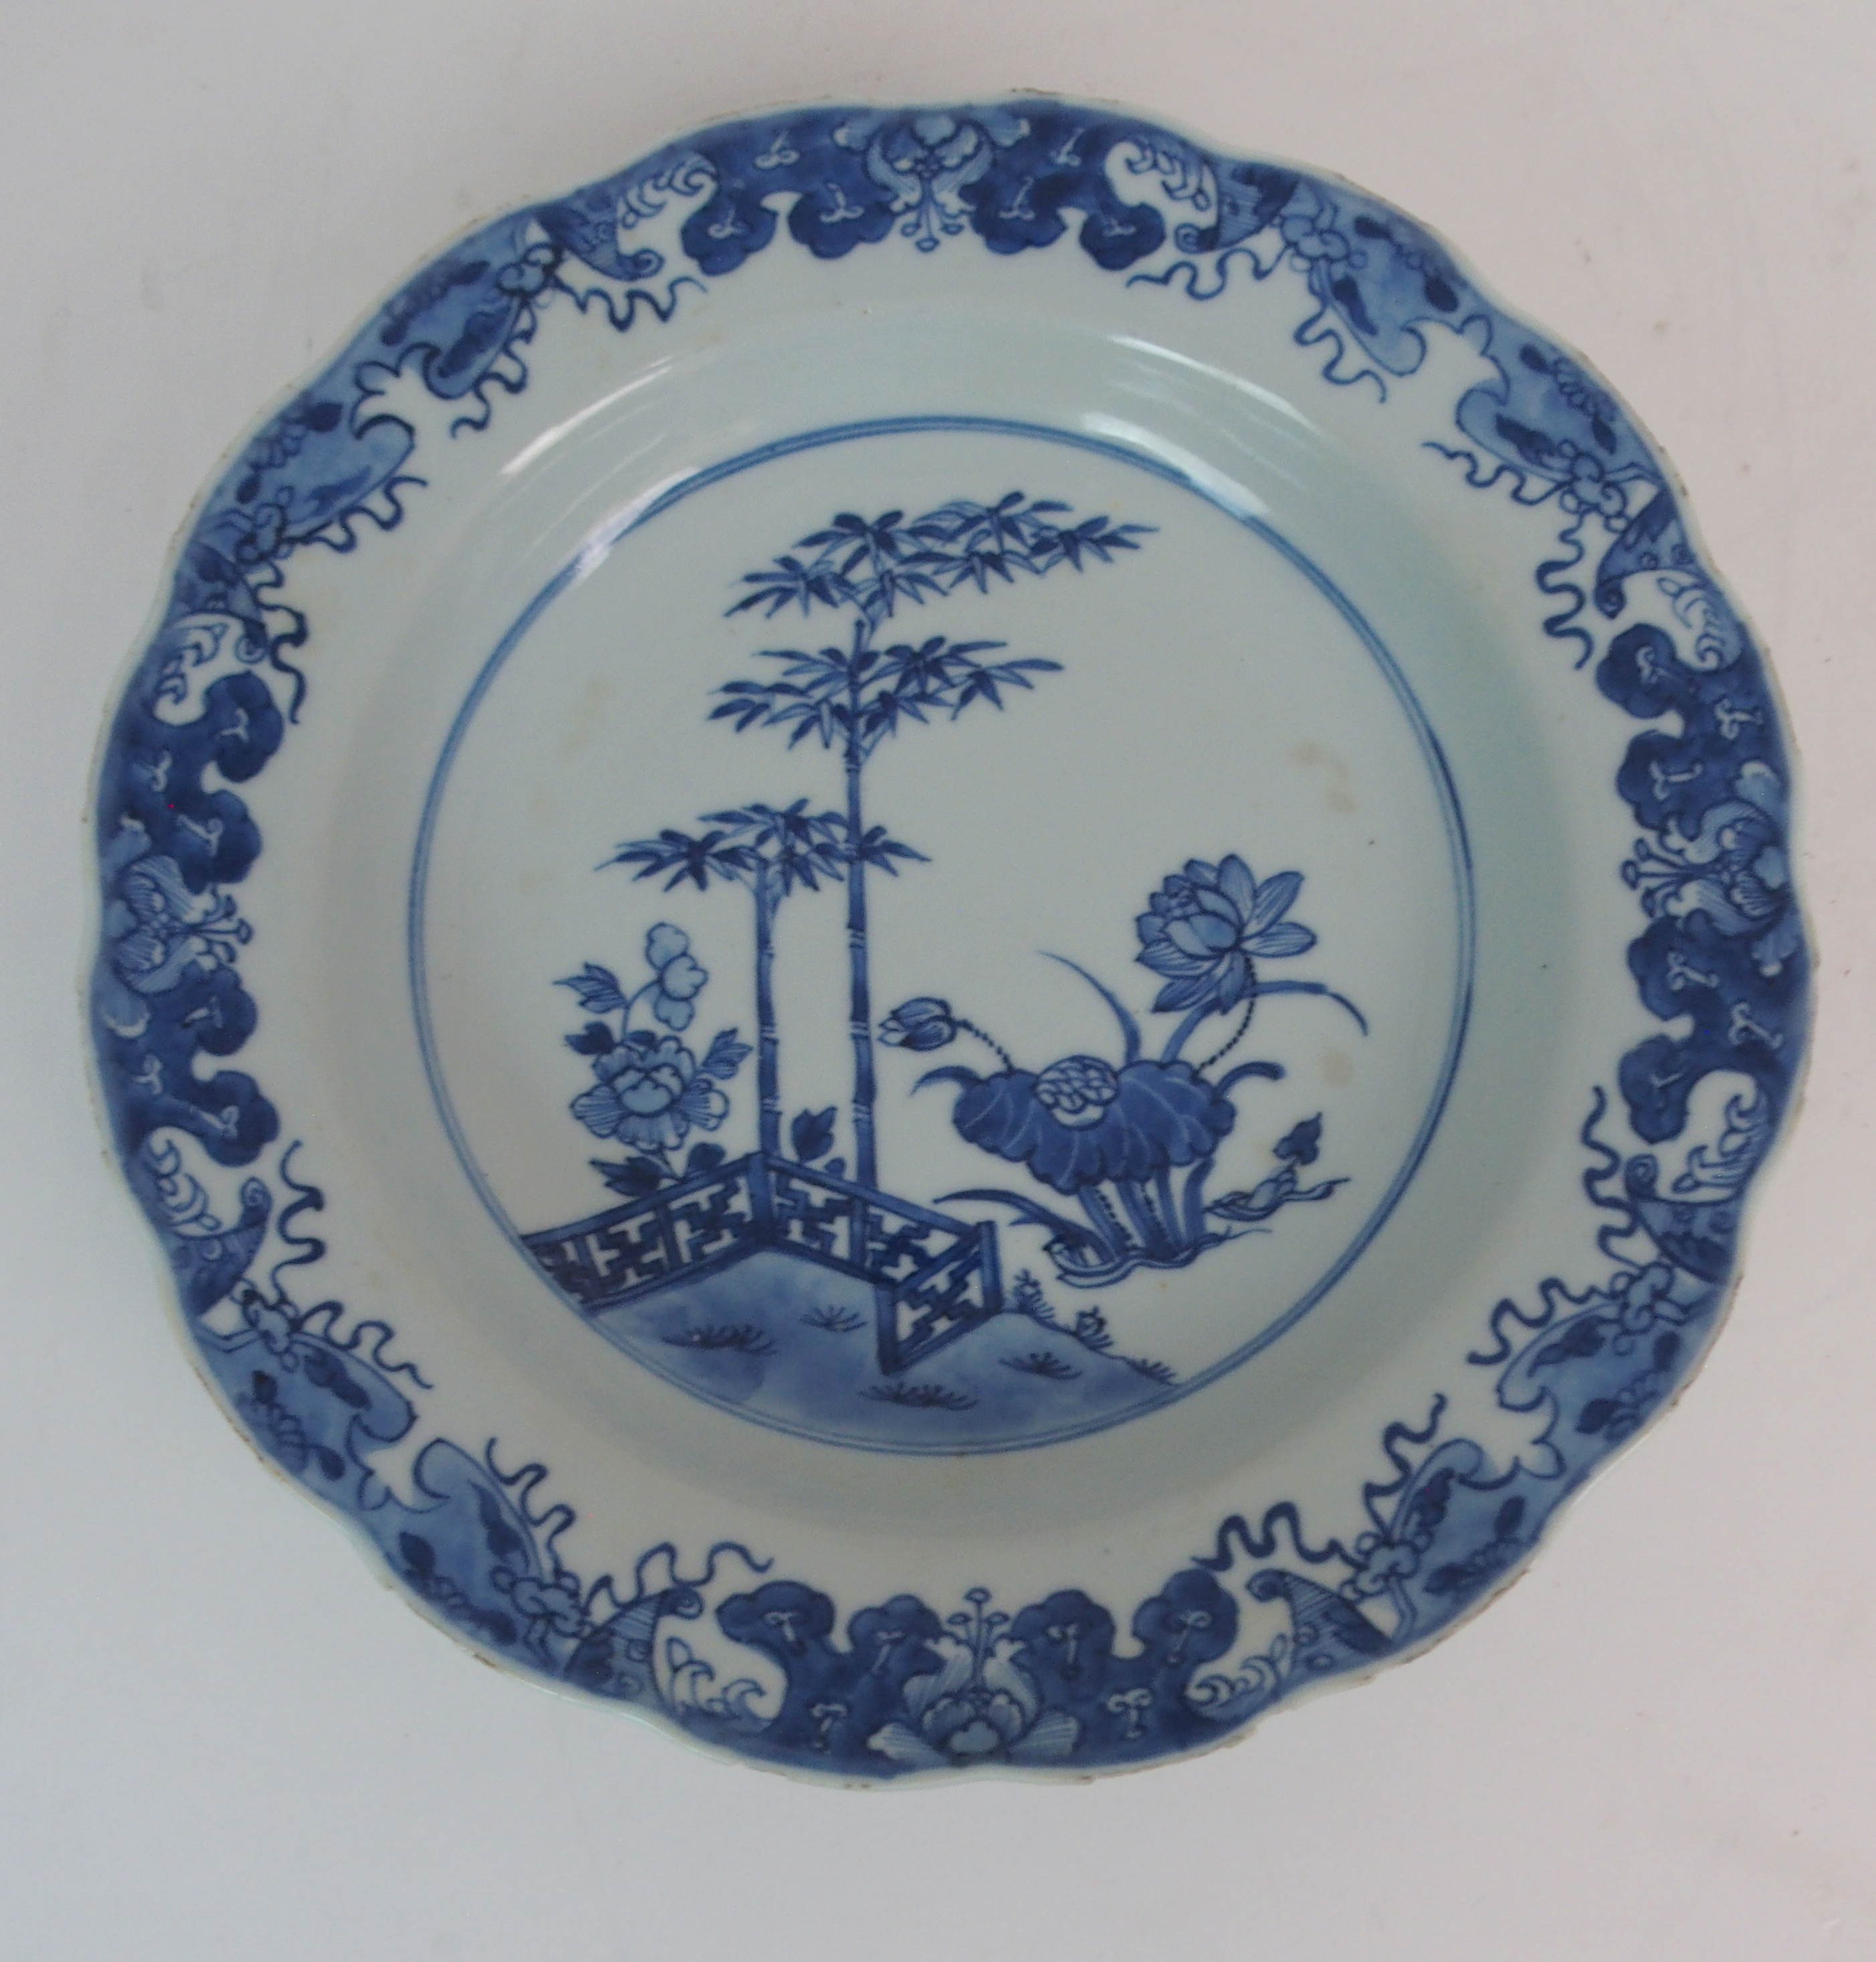 FIVE CHINESE EXPORT PLATES comprising; floral sprays, 22.5cm, Canton figures and precious objects, - Image 5 of 11